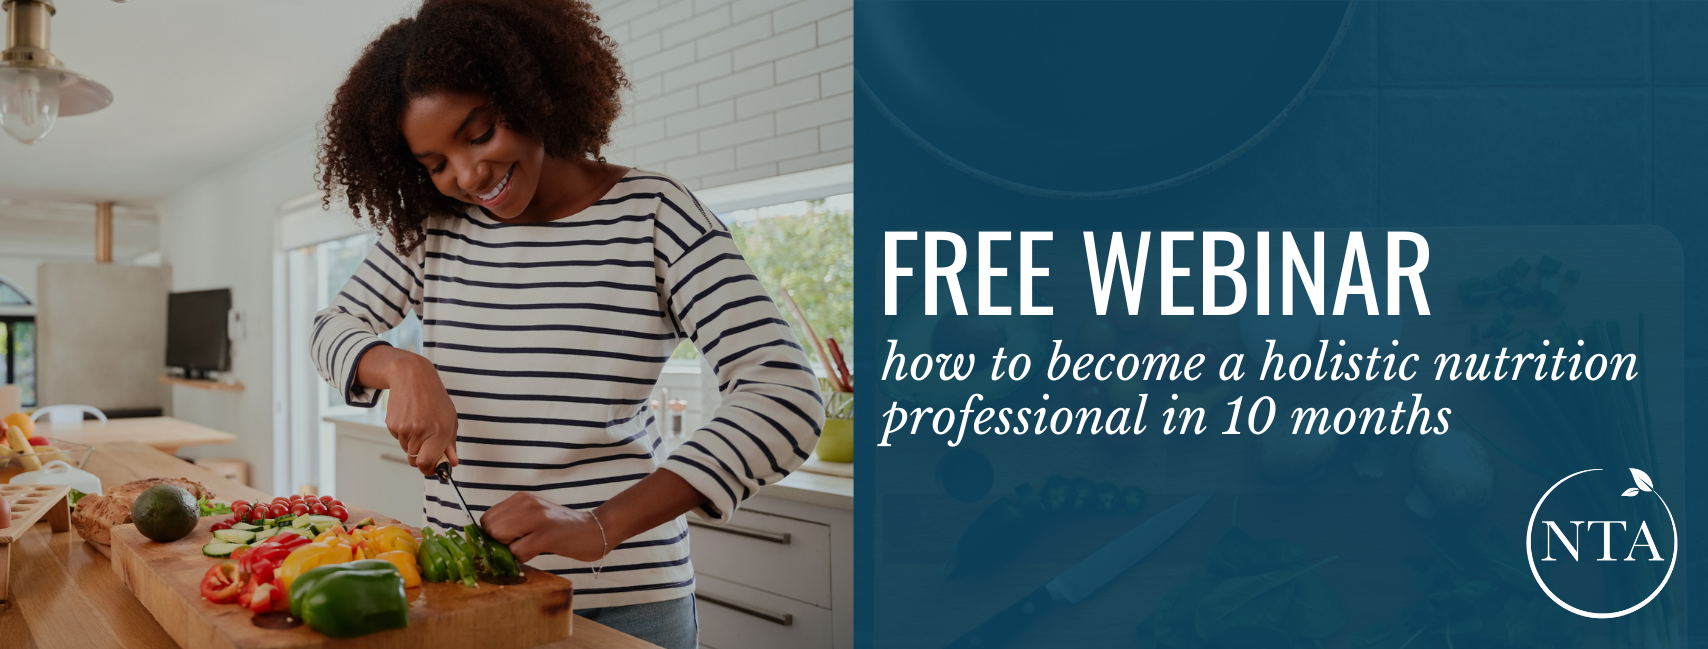 Free Webinar how to become a holistic health professional in just 10 months